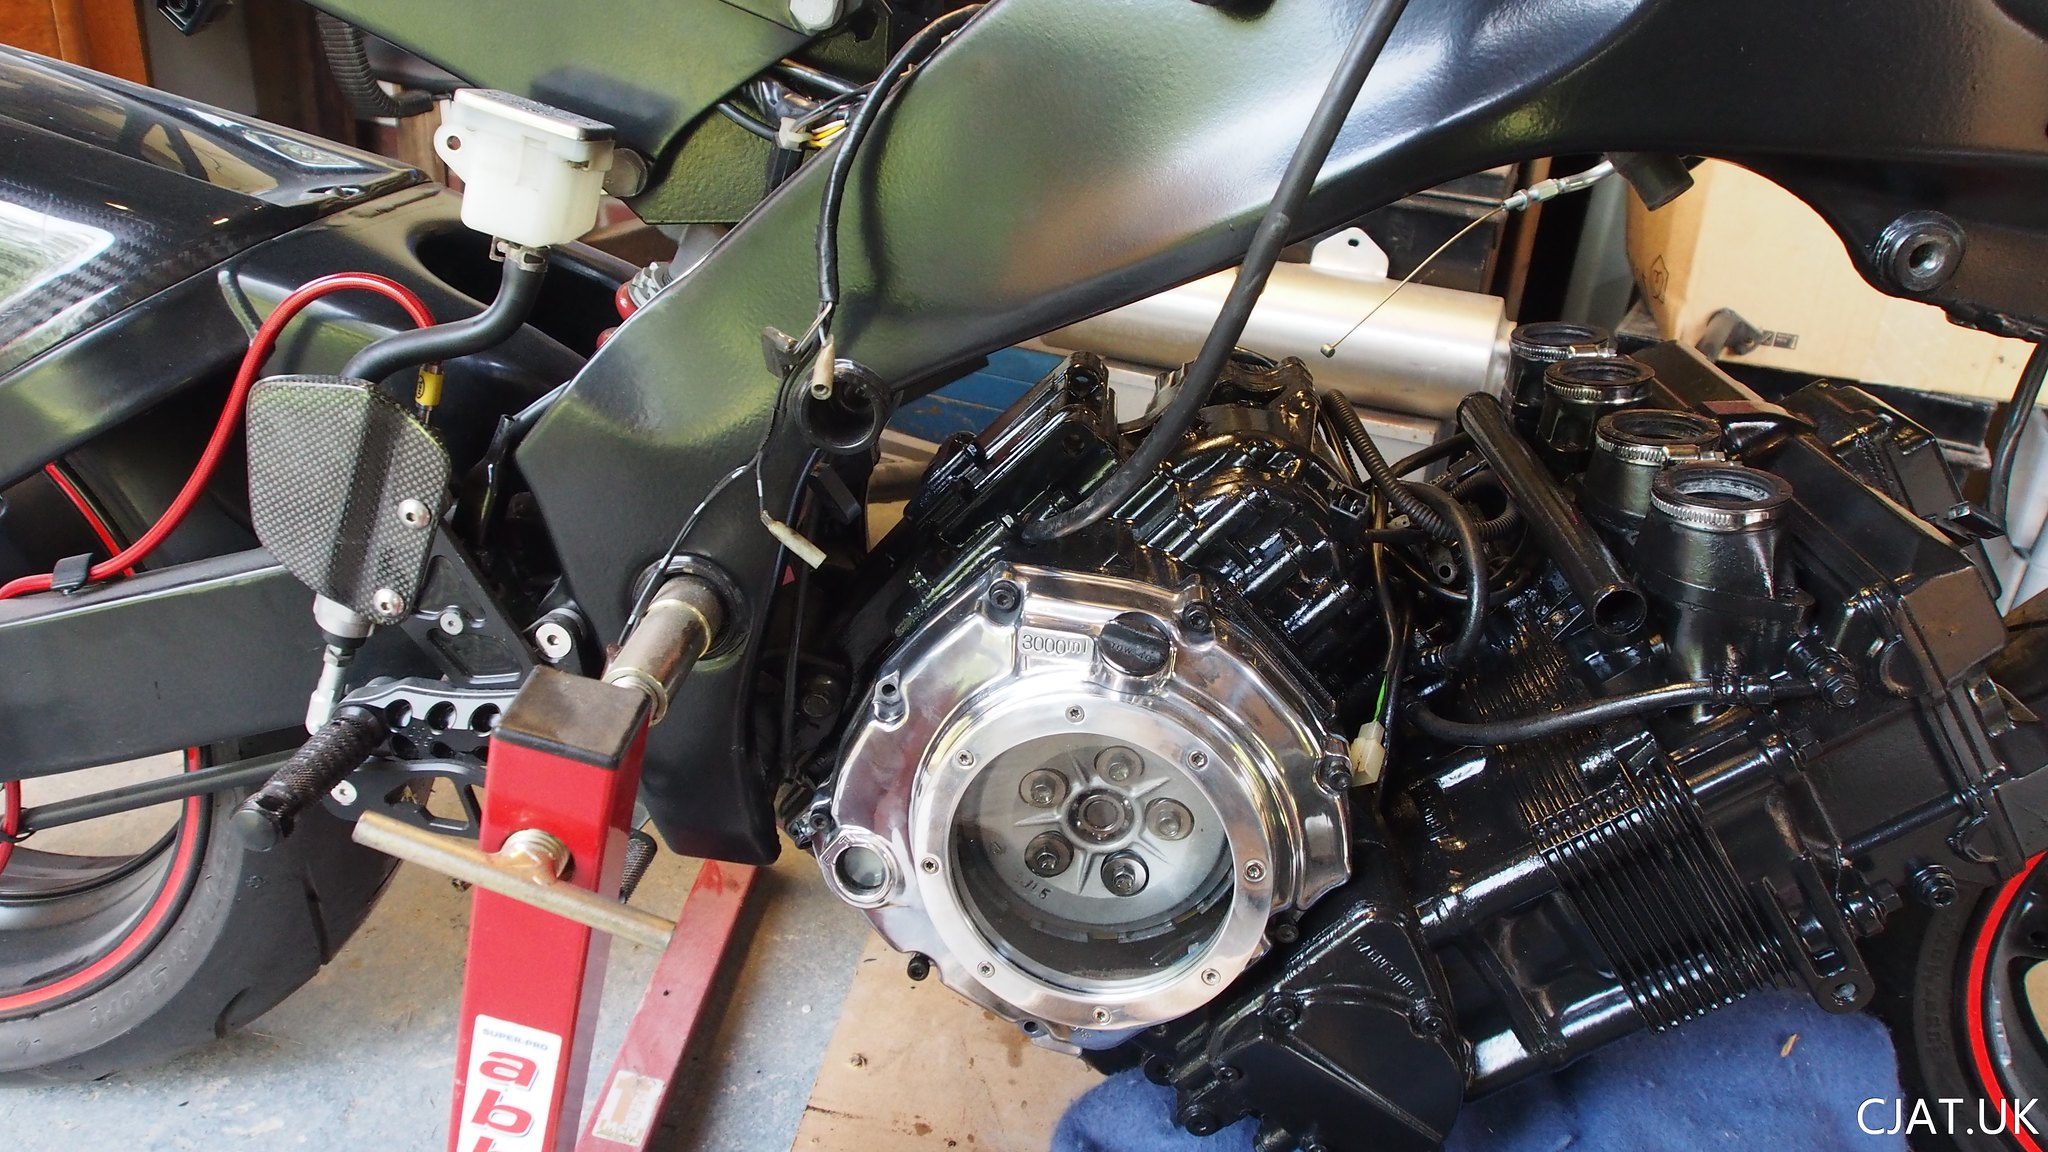 RF900 StreetFighter Project